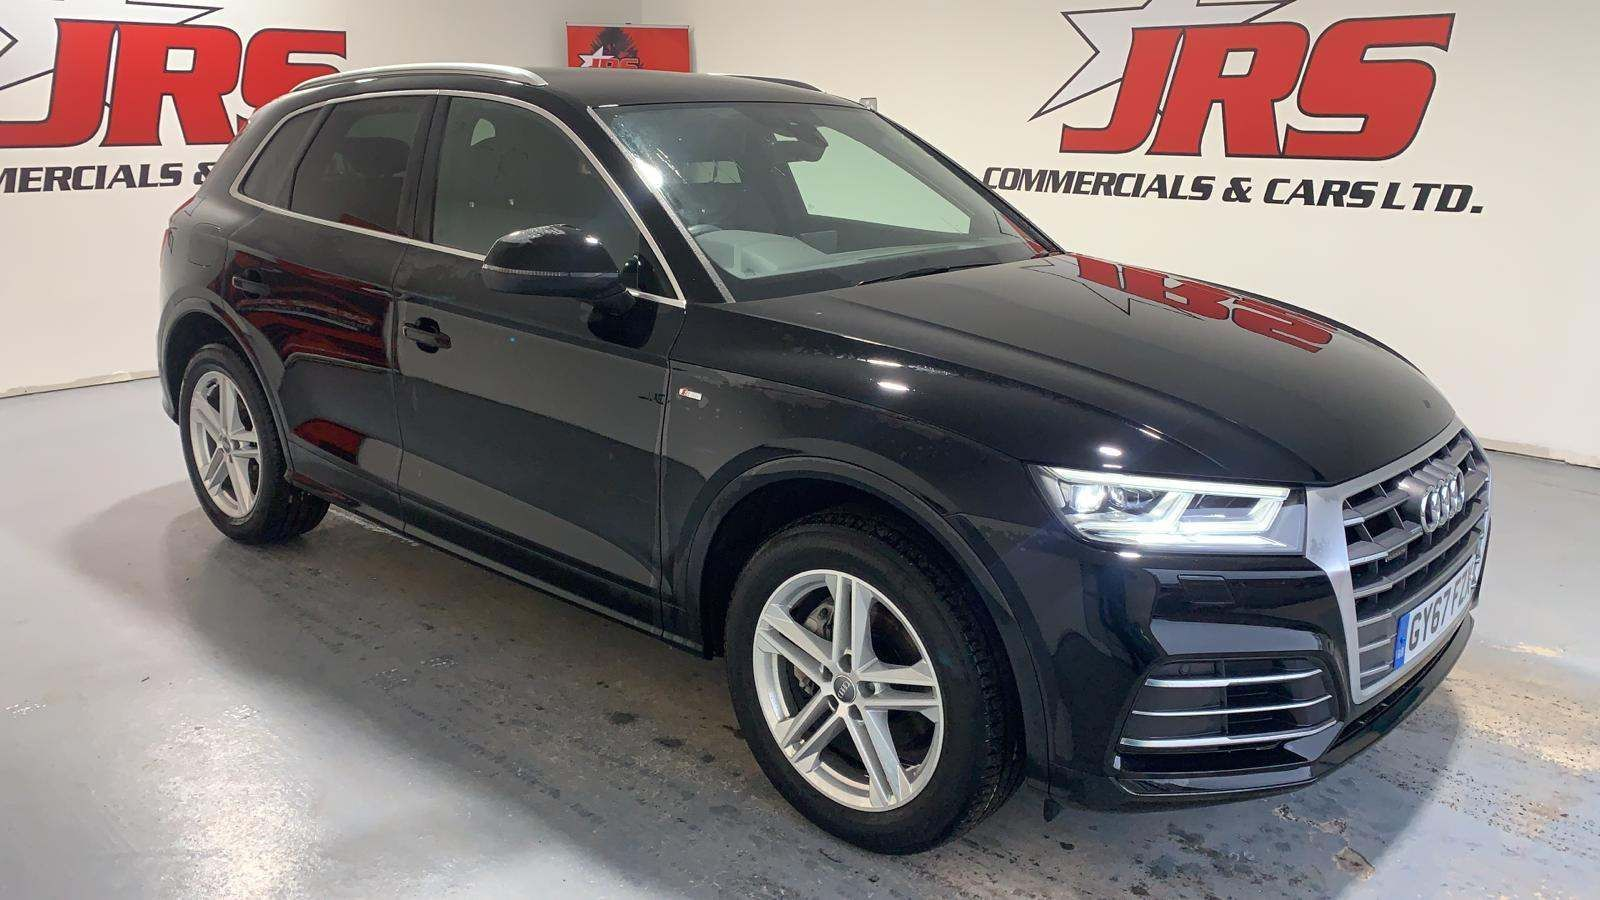 2017 AUDI Q5 2.0 TDI S line S Tronic quattro (s/s) Diesel Automatic  – J R S Commercials And Cars Dungannon